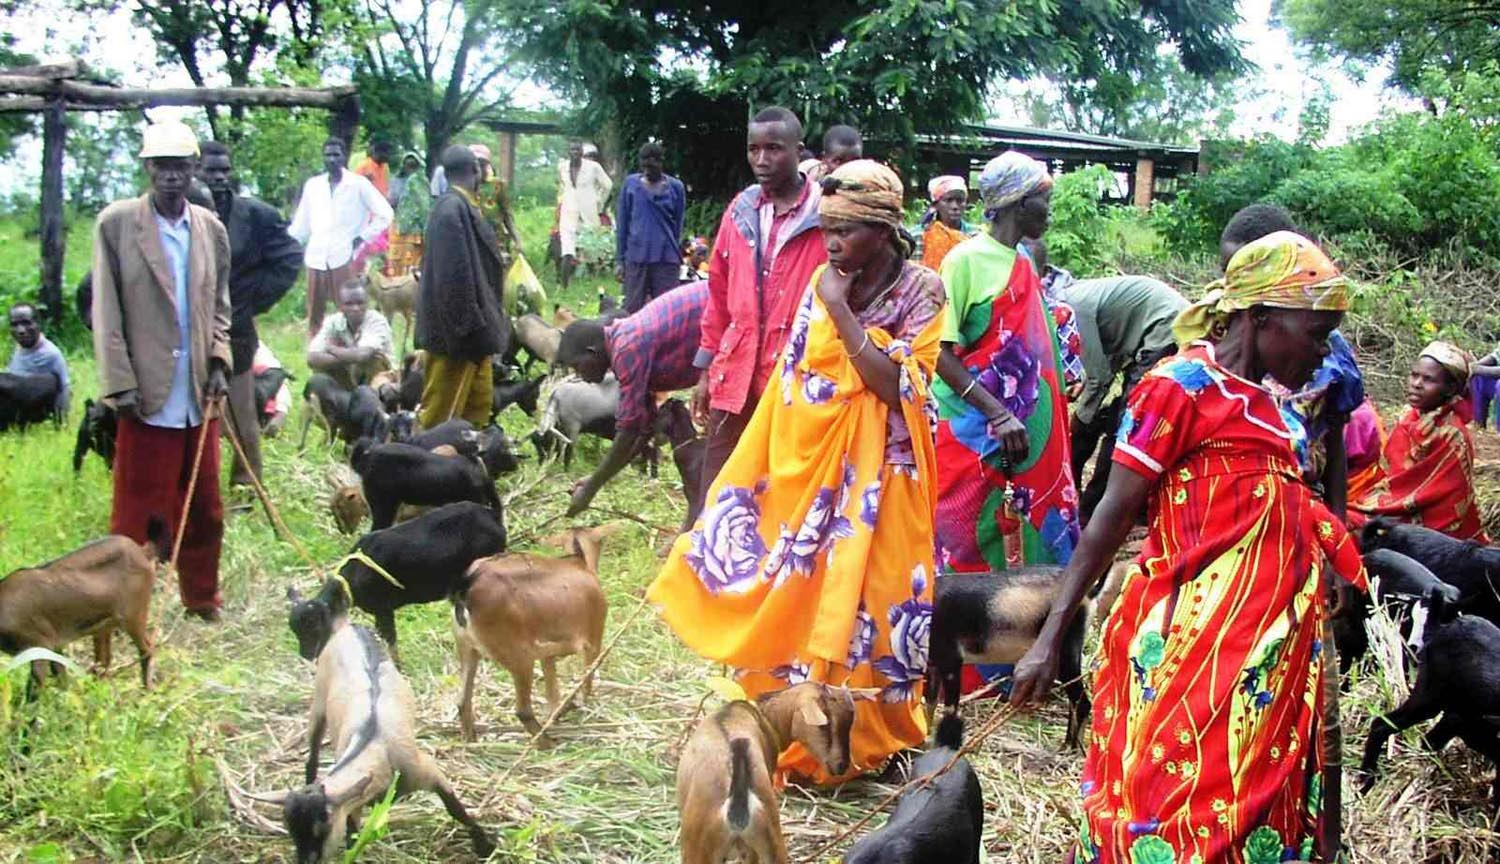 A group of Burundian women rearing goats